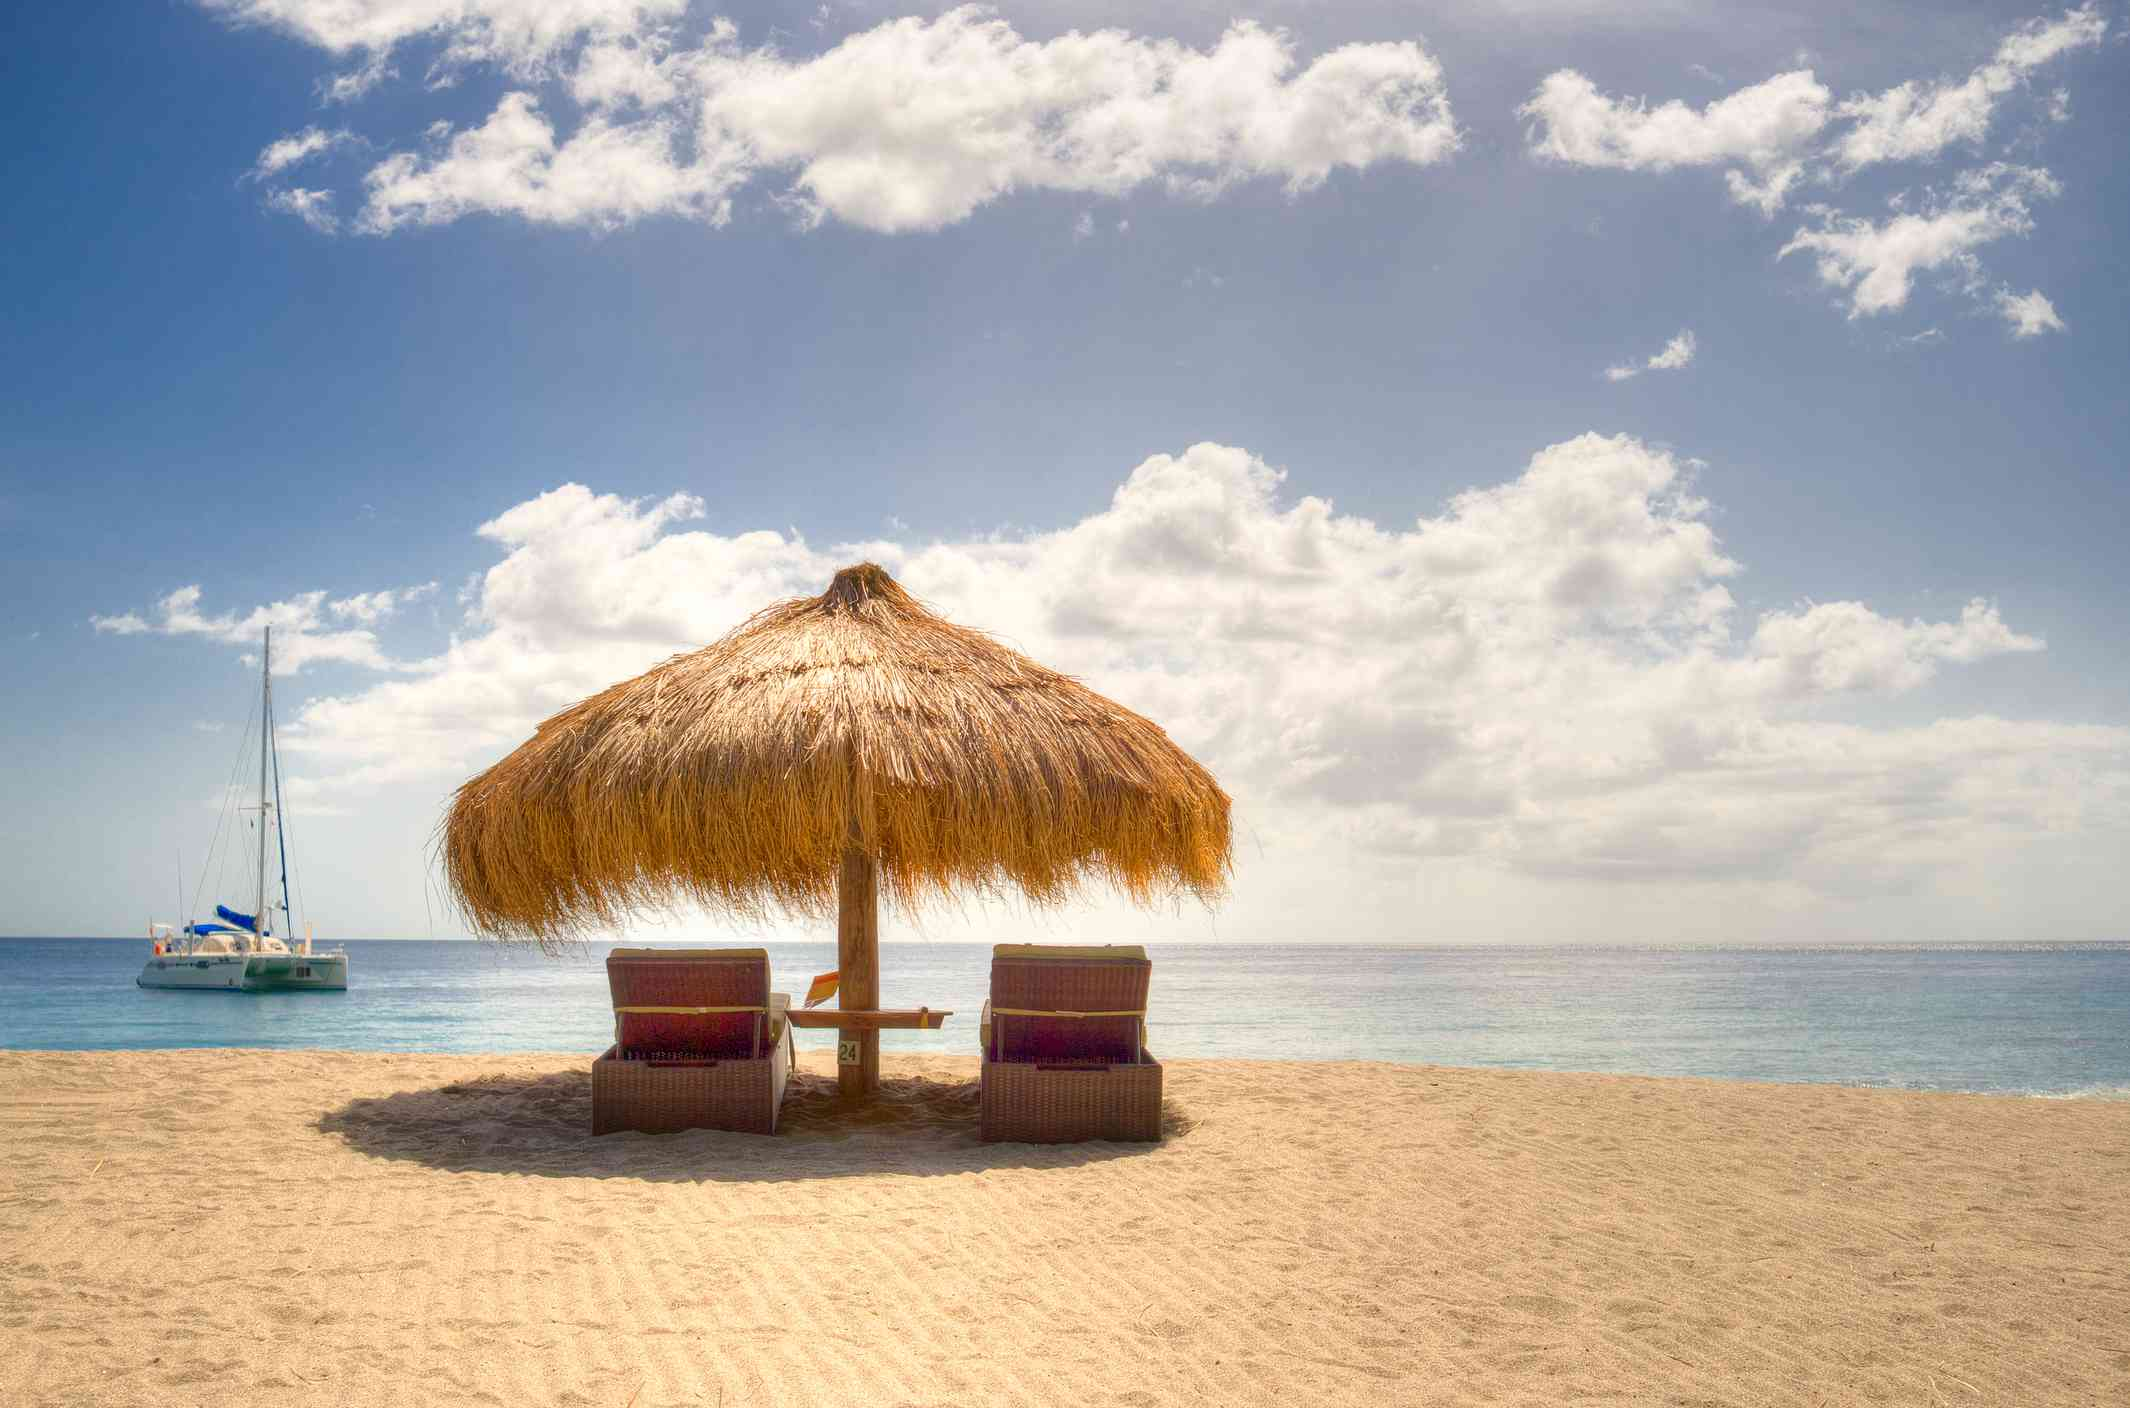 View of umbrella covering two lounge chairs on Anse Chastanet beach